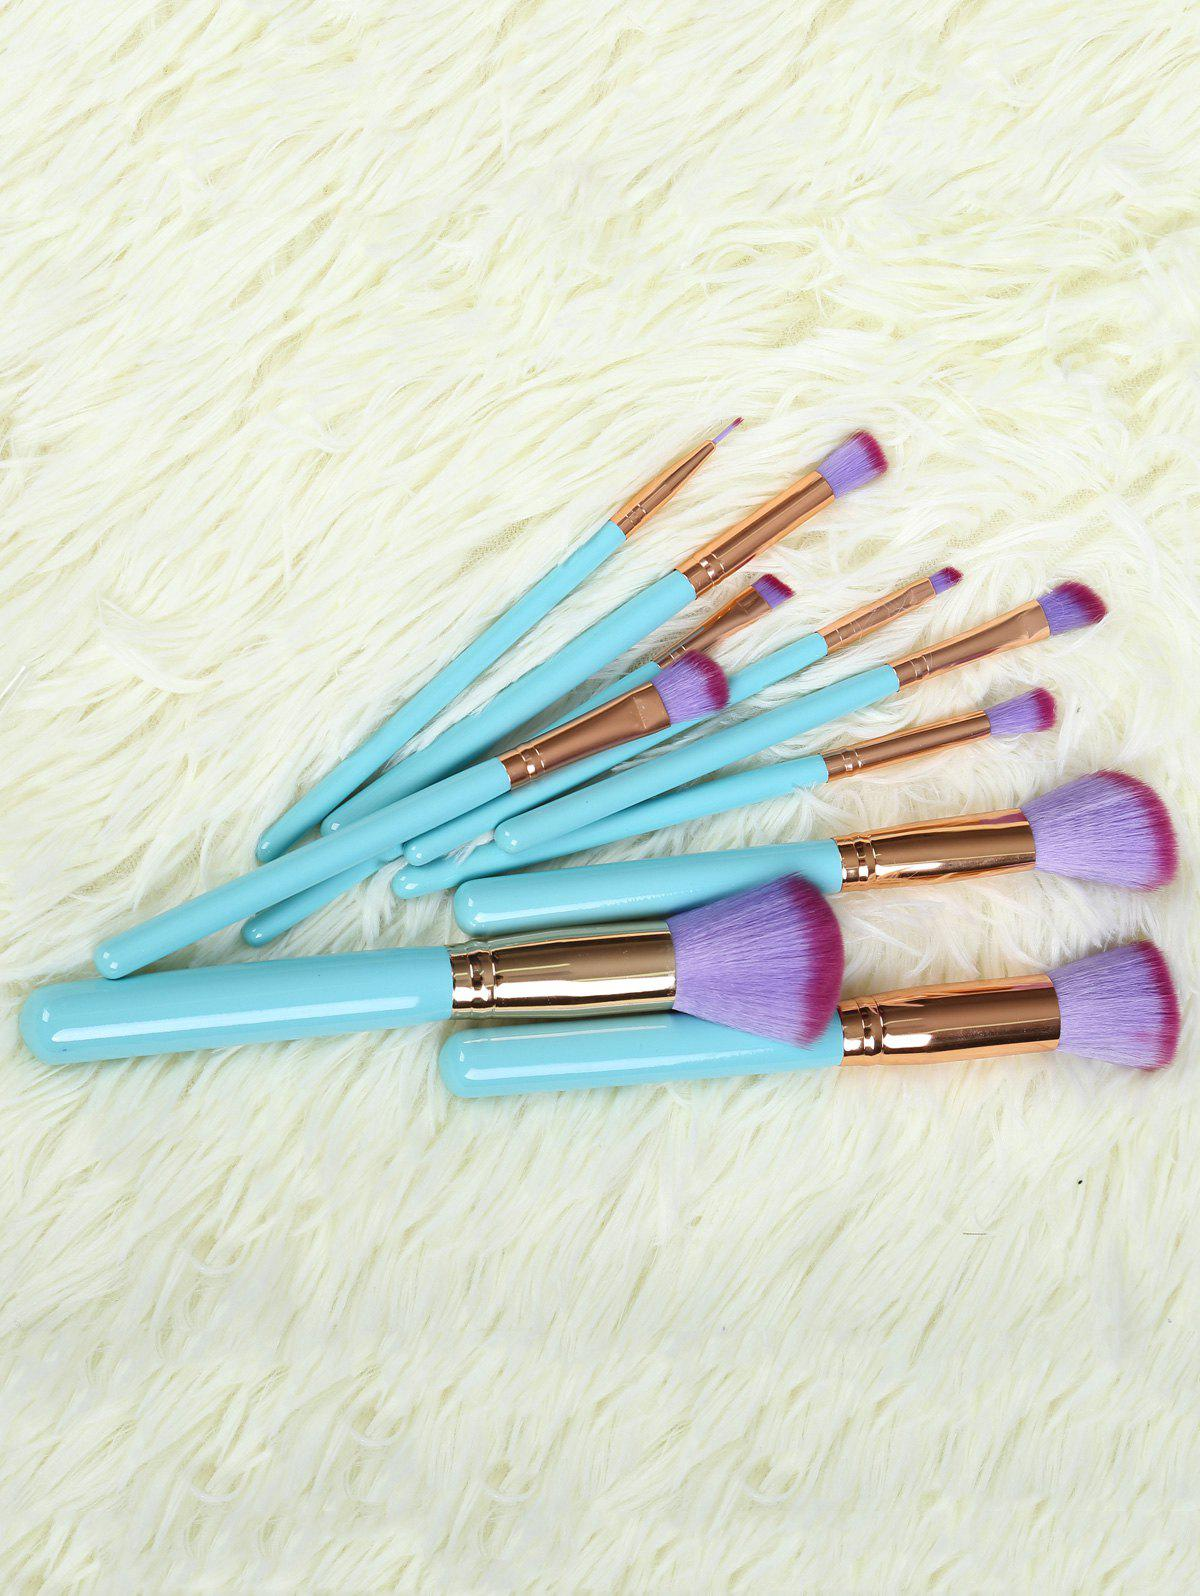 10 Pcs Makeup Brushes Set with Scallop Brush Bag - BLUE